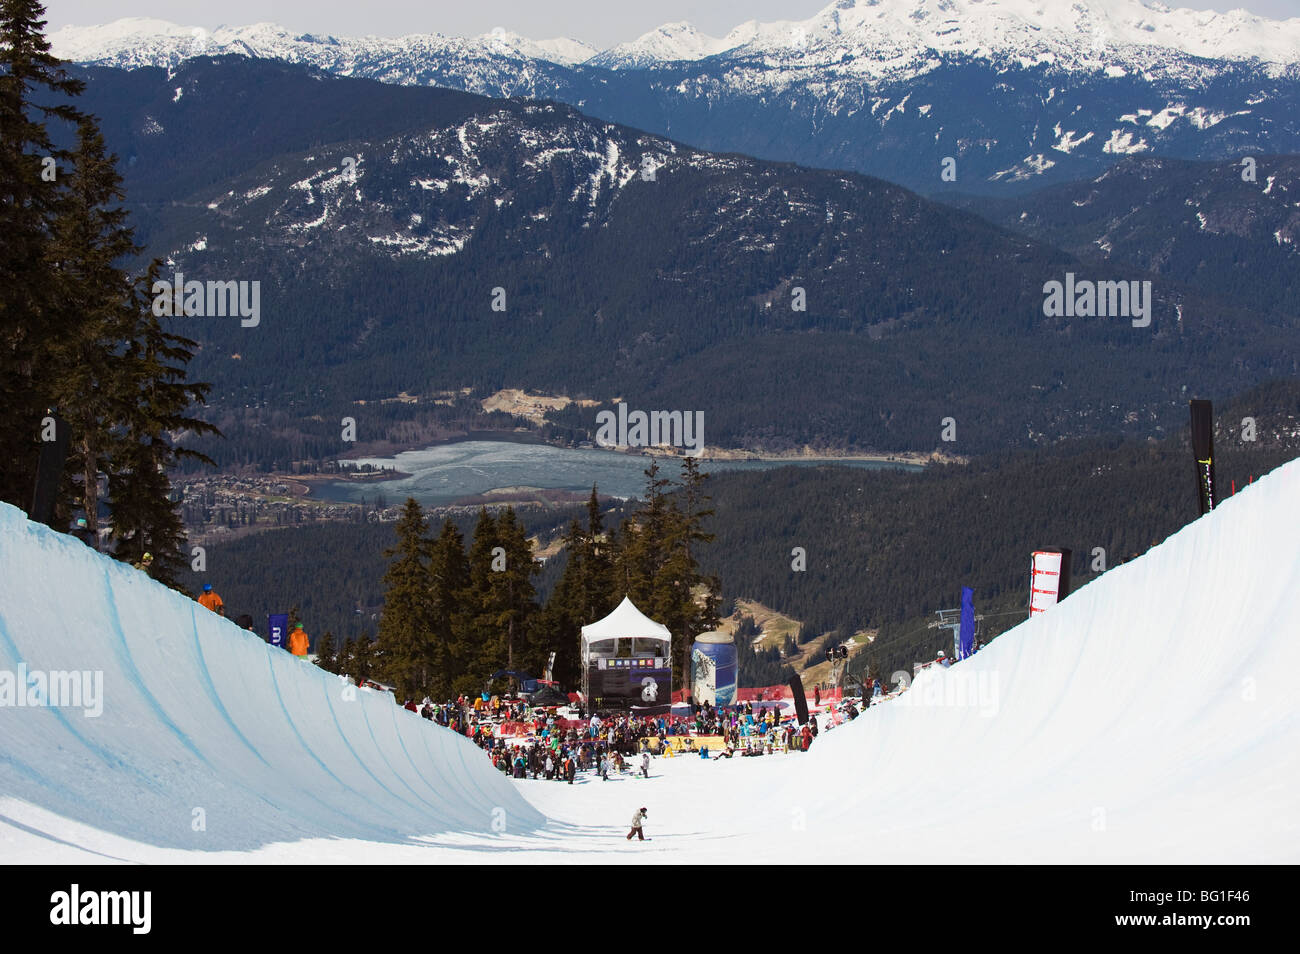 Festival Telus concurrence half-pipe, Whistler Mountain Resort, lieu de Jeux Olympiques d'hiver de 2010, British Photo Stock